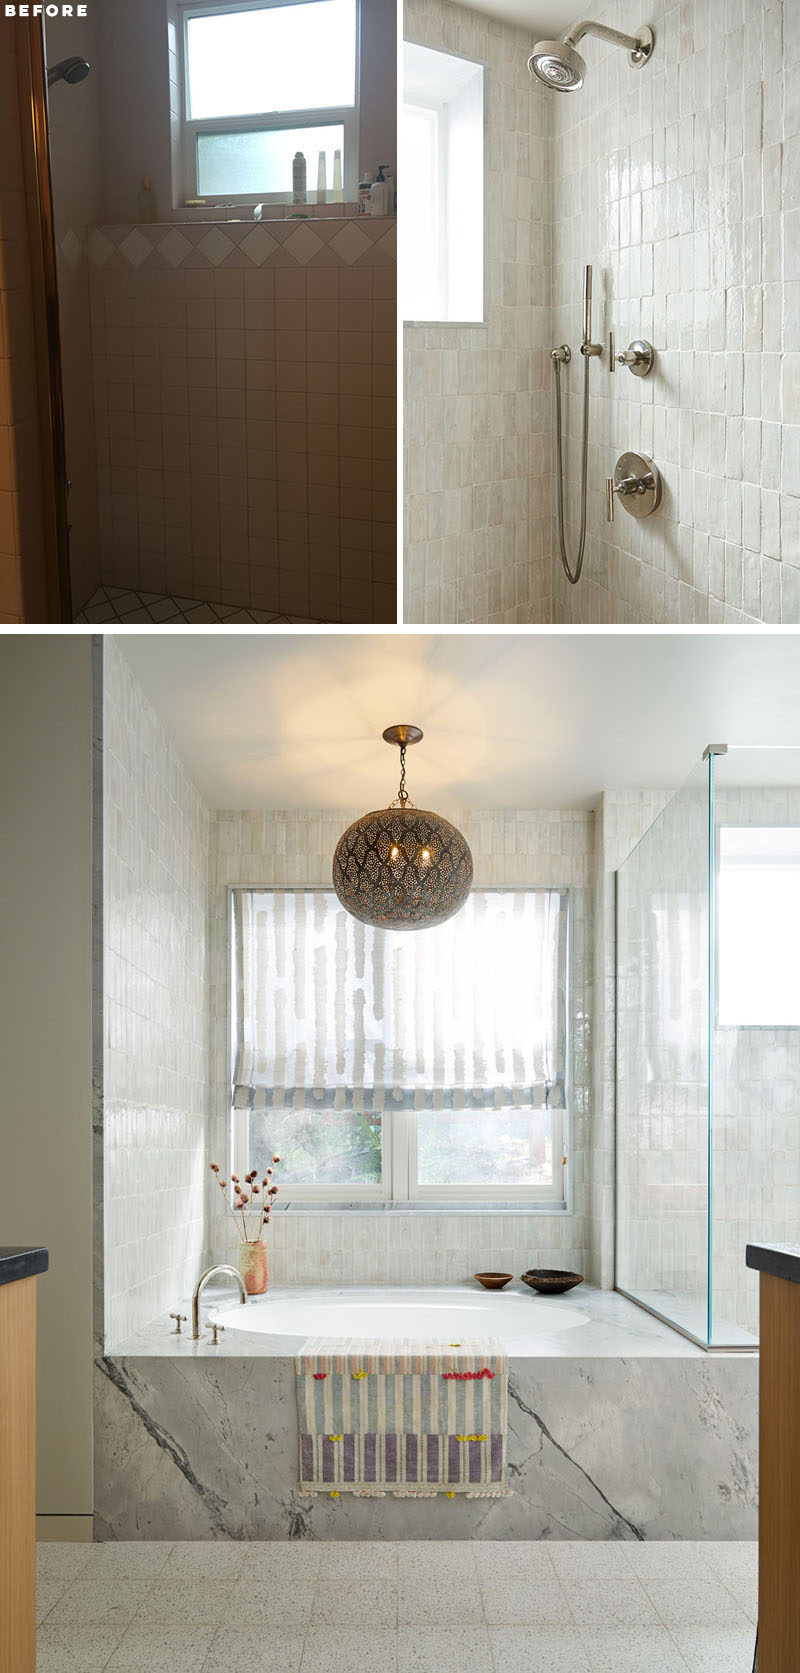 BEFORE & AFTER - Soft pink tiles in this bathroom were replaced with light textured tiles, while the soaking tub is now the focal point of the room. #BathroomRenovation #BathroomRemodel